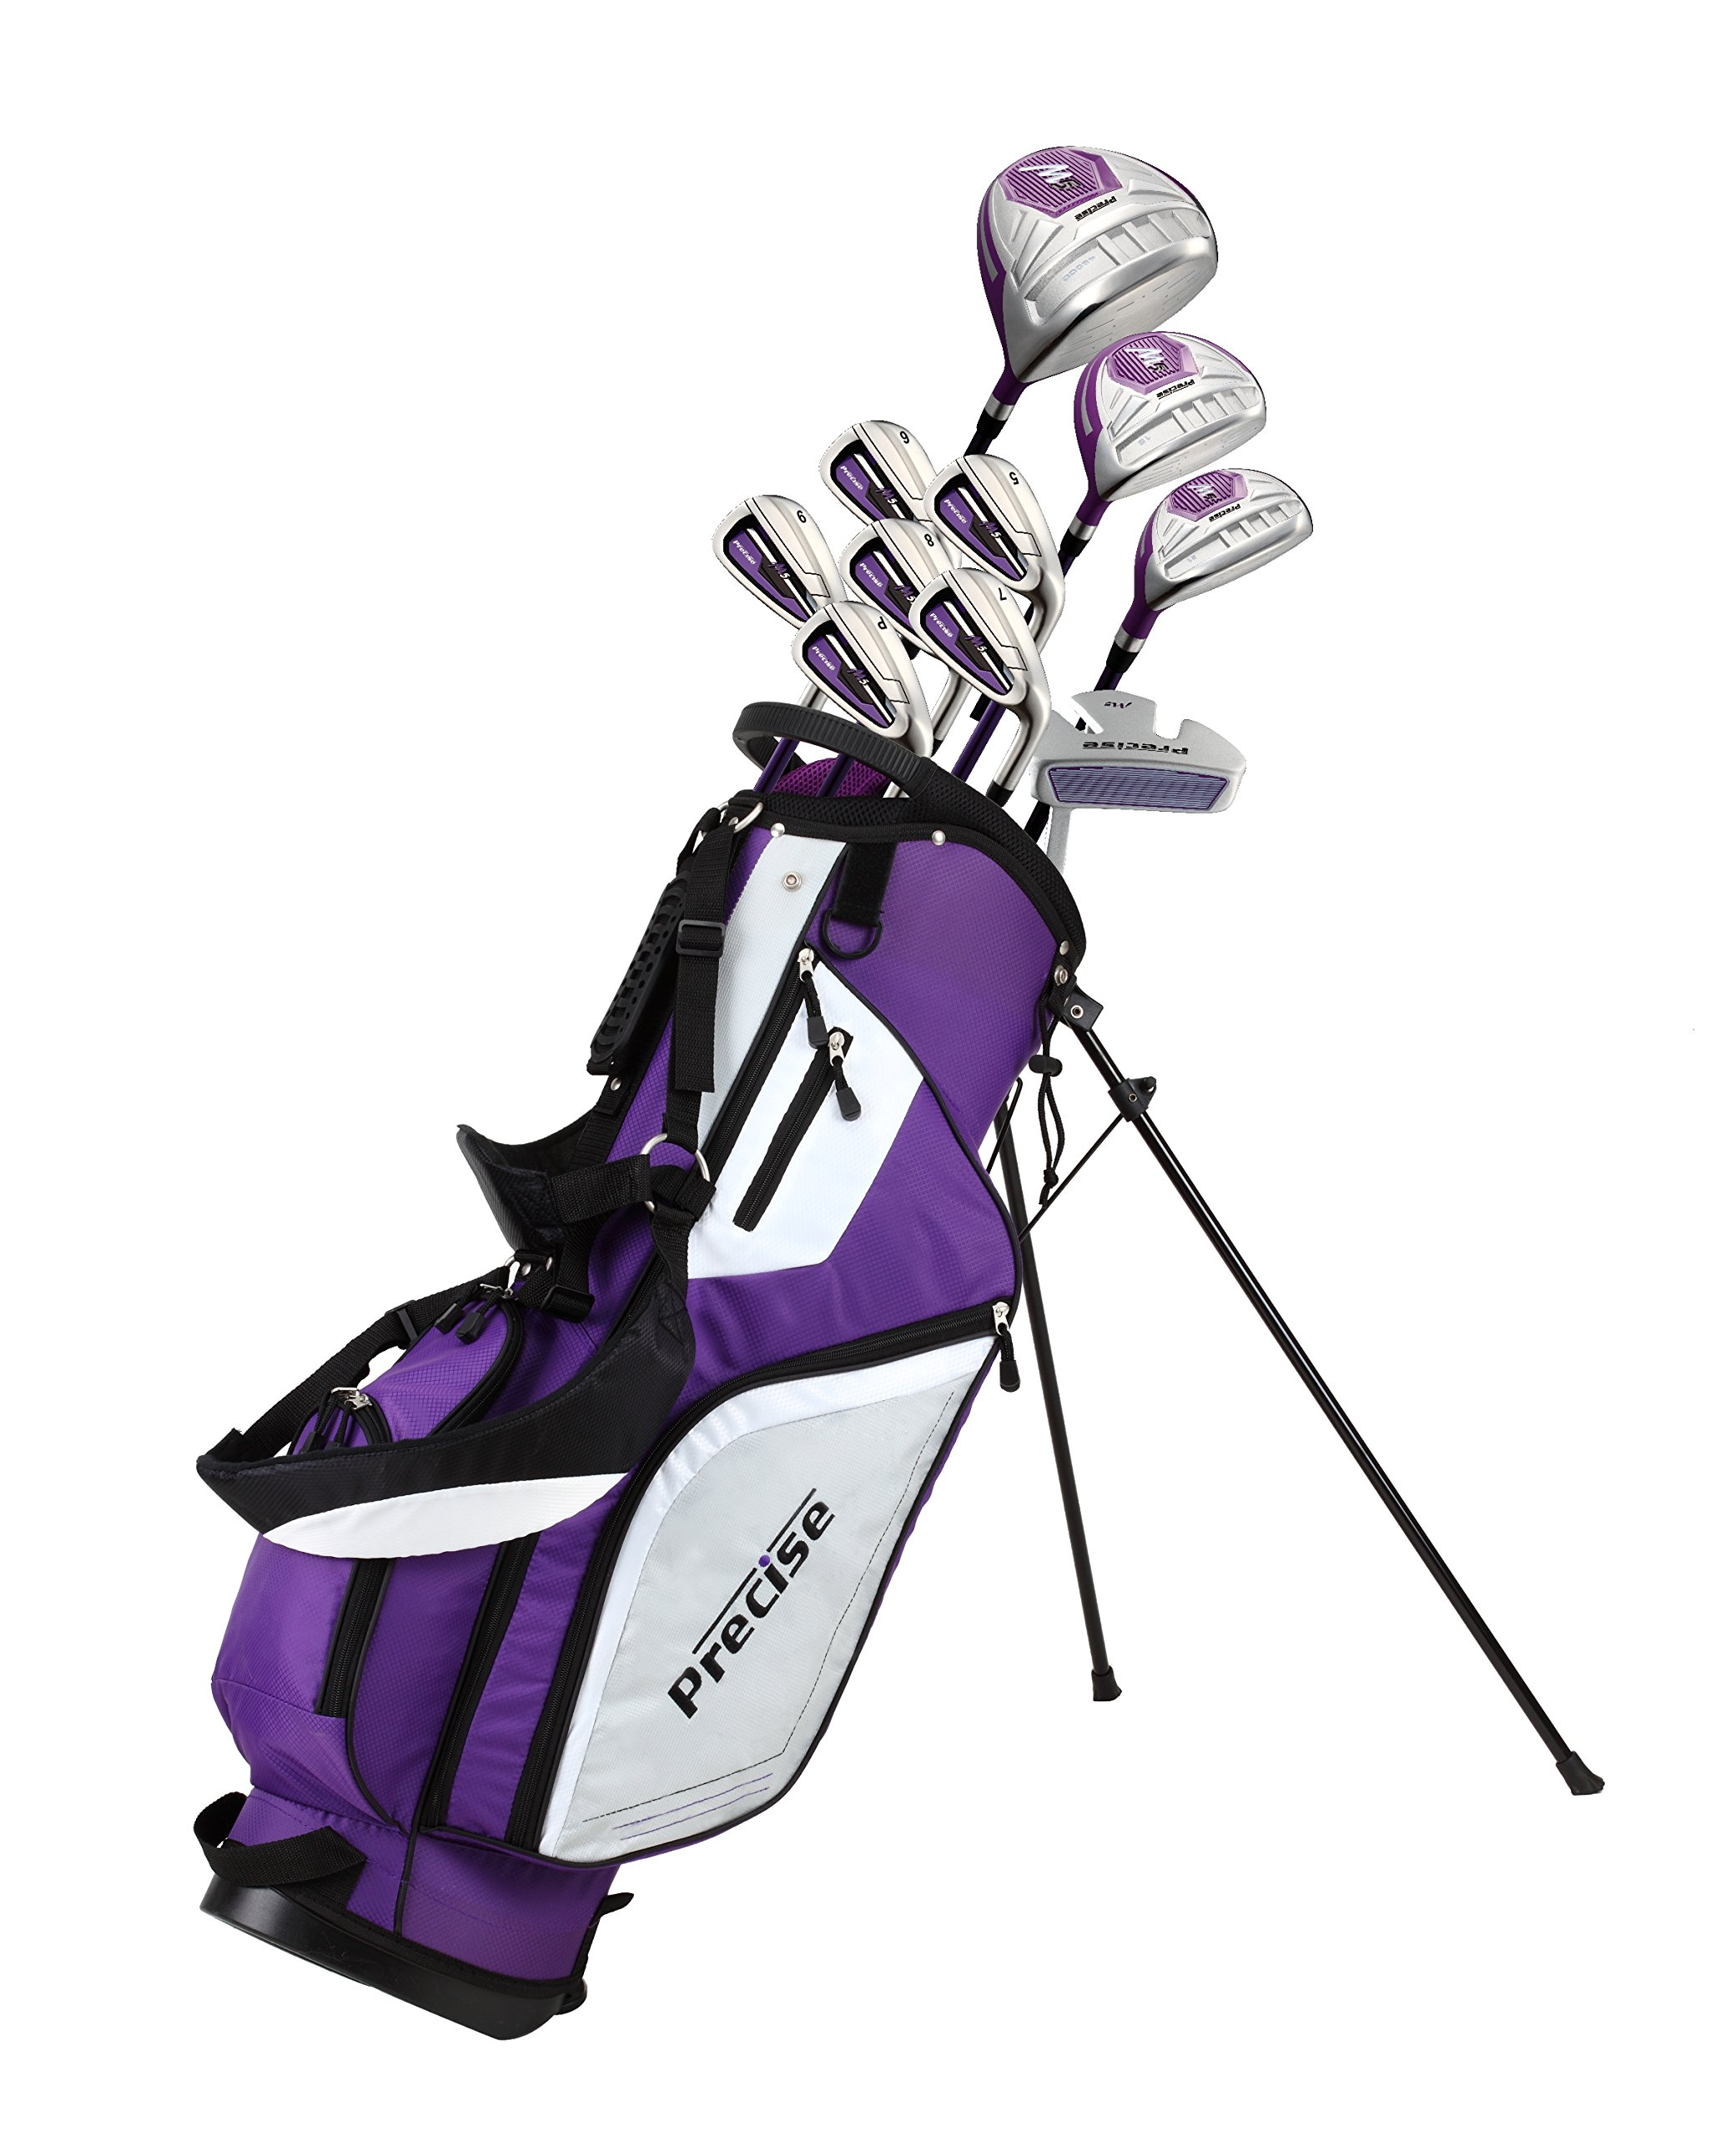 Precise M5 Ladies Womens Complete Right Handed Golf Clubs Set Includes Titanium Driver, S.S. Fairway, S.S. Hybrid, S.S. 5-PW Irons, Putter, Stand Bag, 3 H/C's Purple (Right Hand) by PreciseGolf Co. (Image #1)